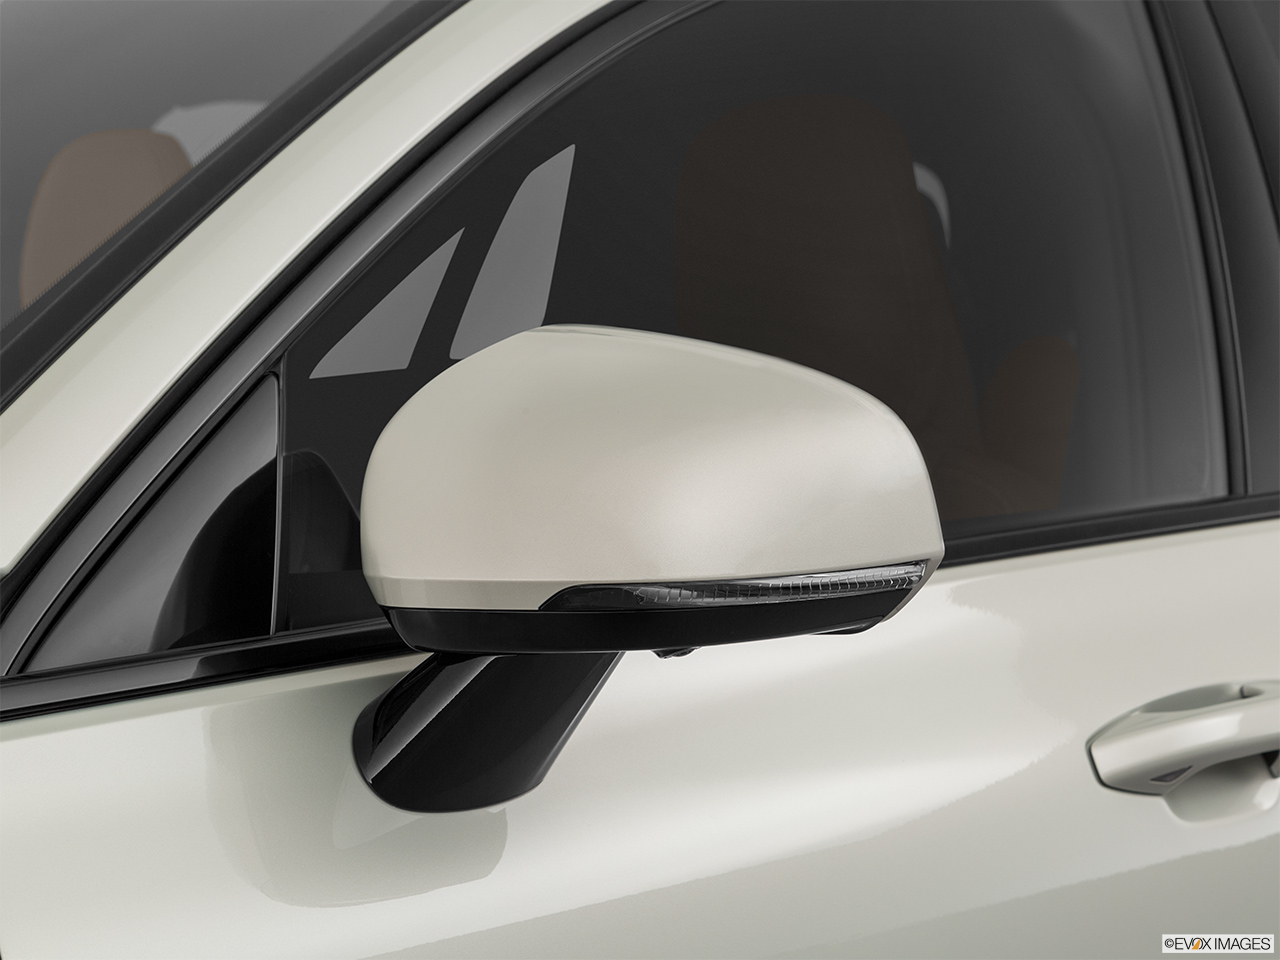 2020 Volvo V60 Cross Country T5 AWD Driver's side mirror, 3_4 rear